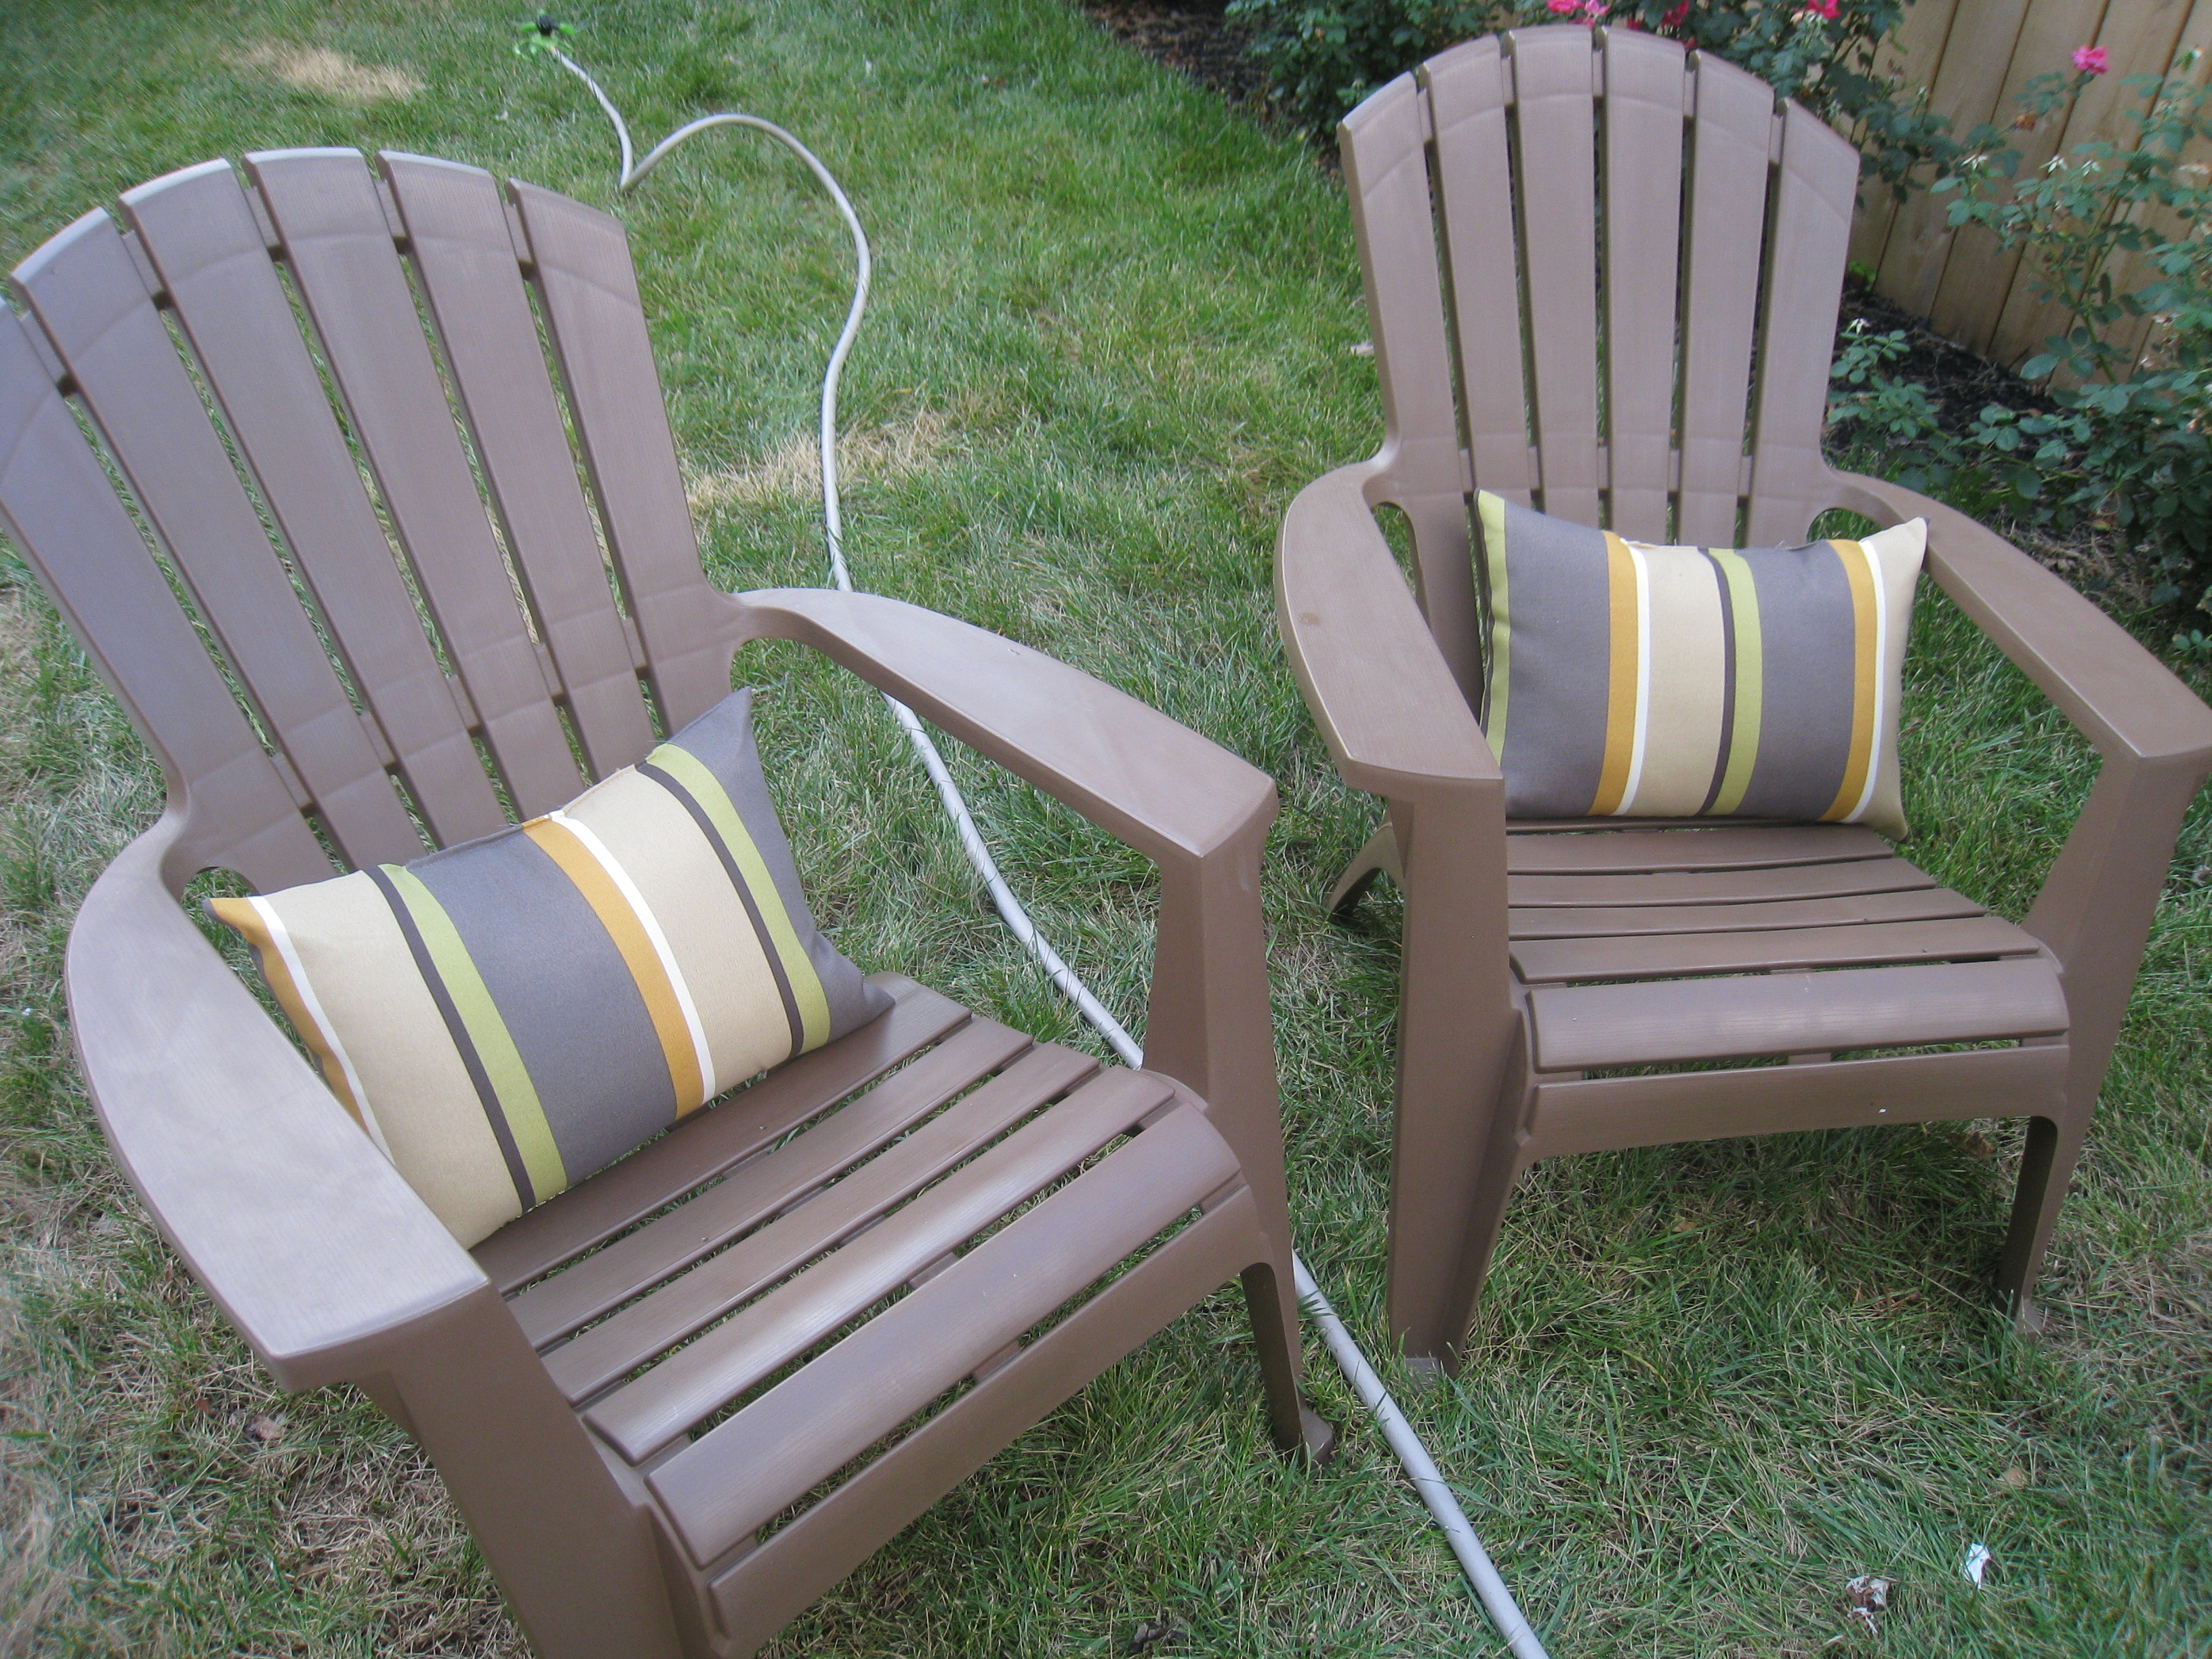 Plans For Adirondack Chairs Download Diy Childs Adirondack Chair Plans Diy Do It